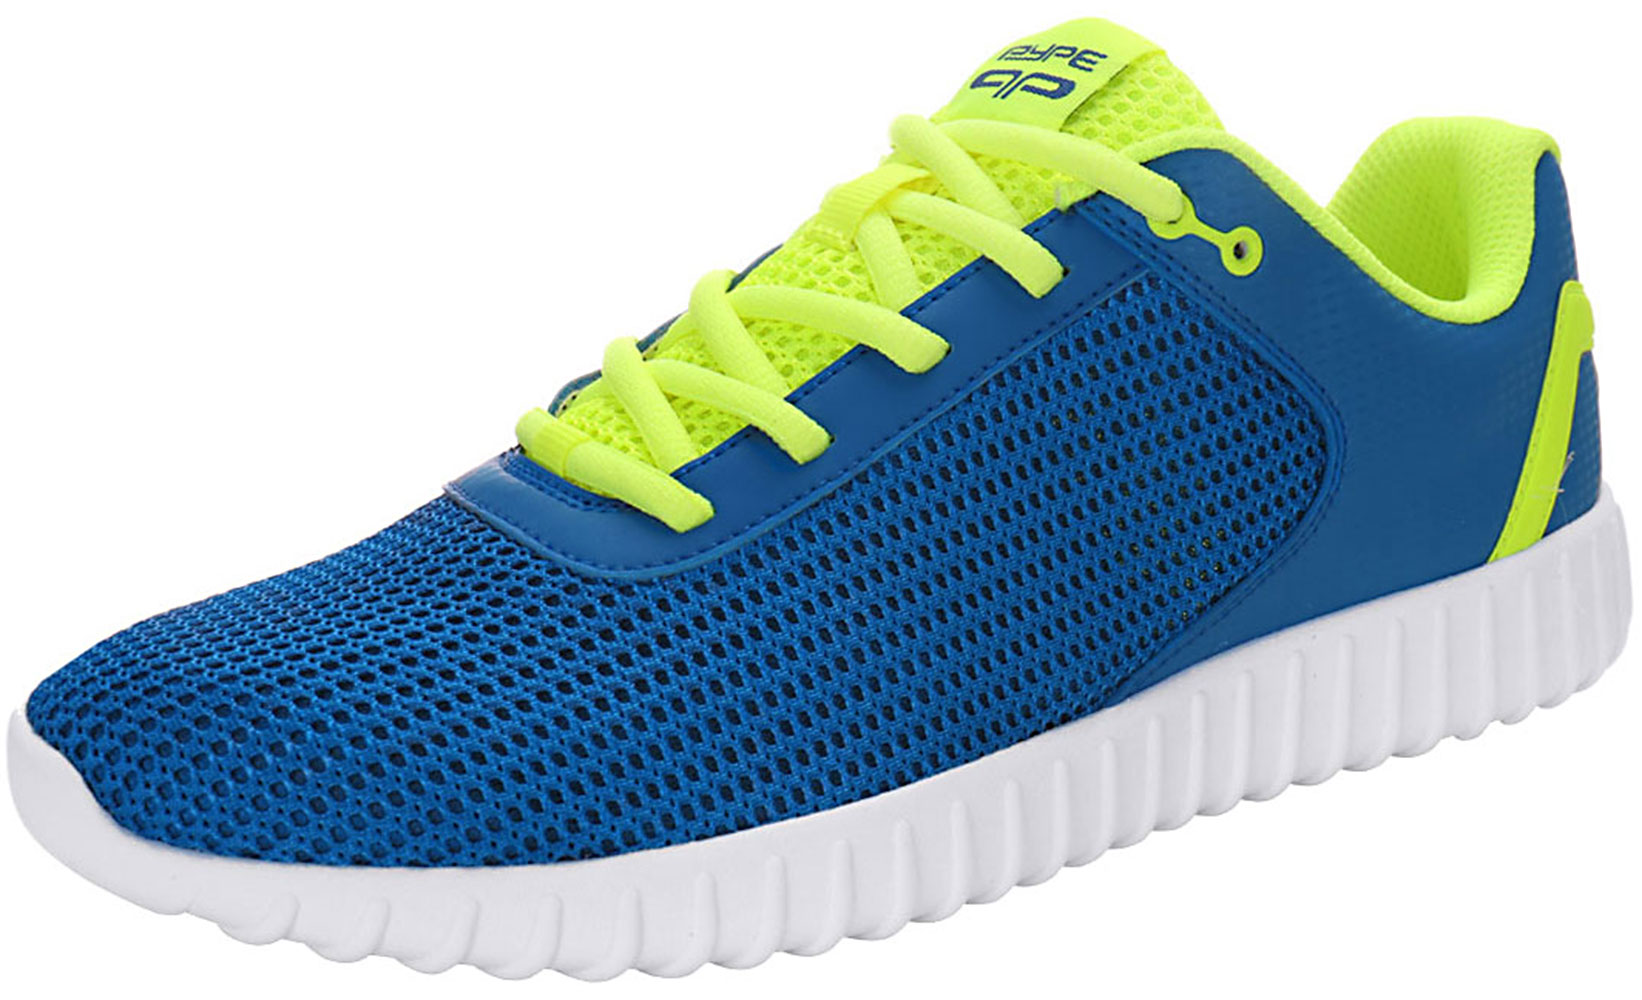 PYPE Women Contrast Color PU Panel Mesh Training Shoes Blue US 8.5